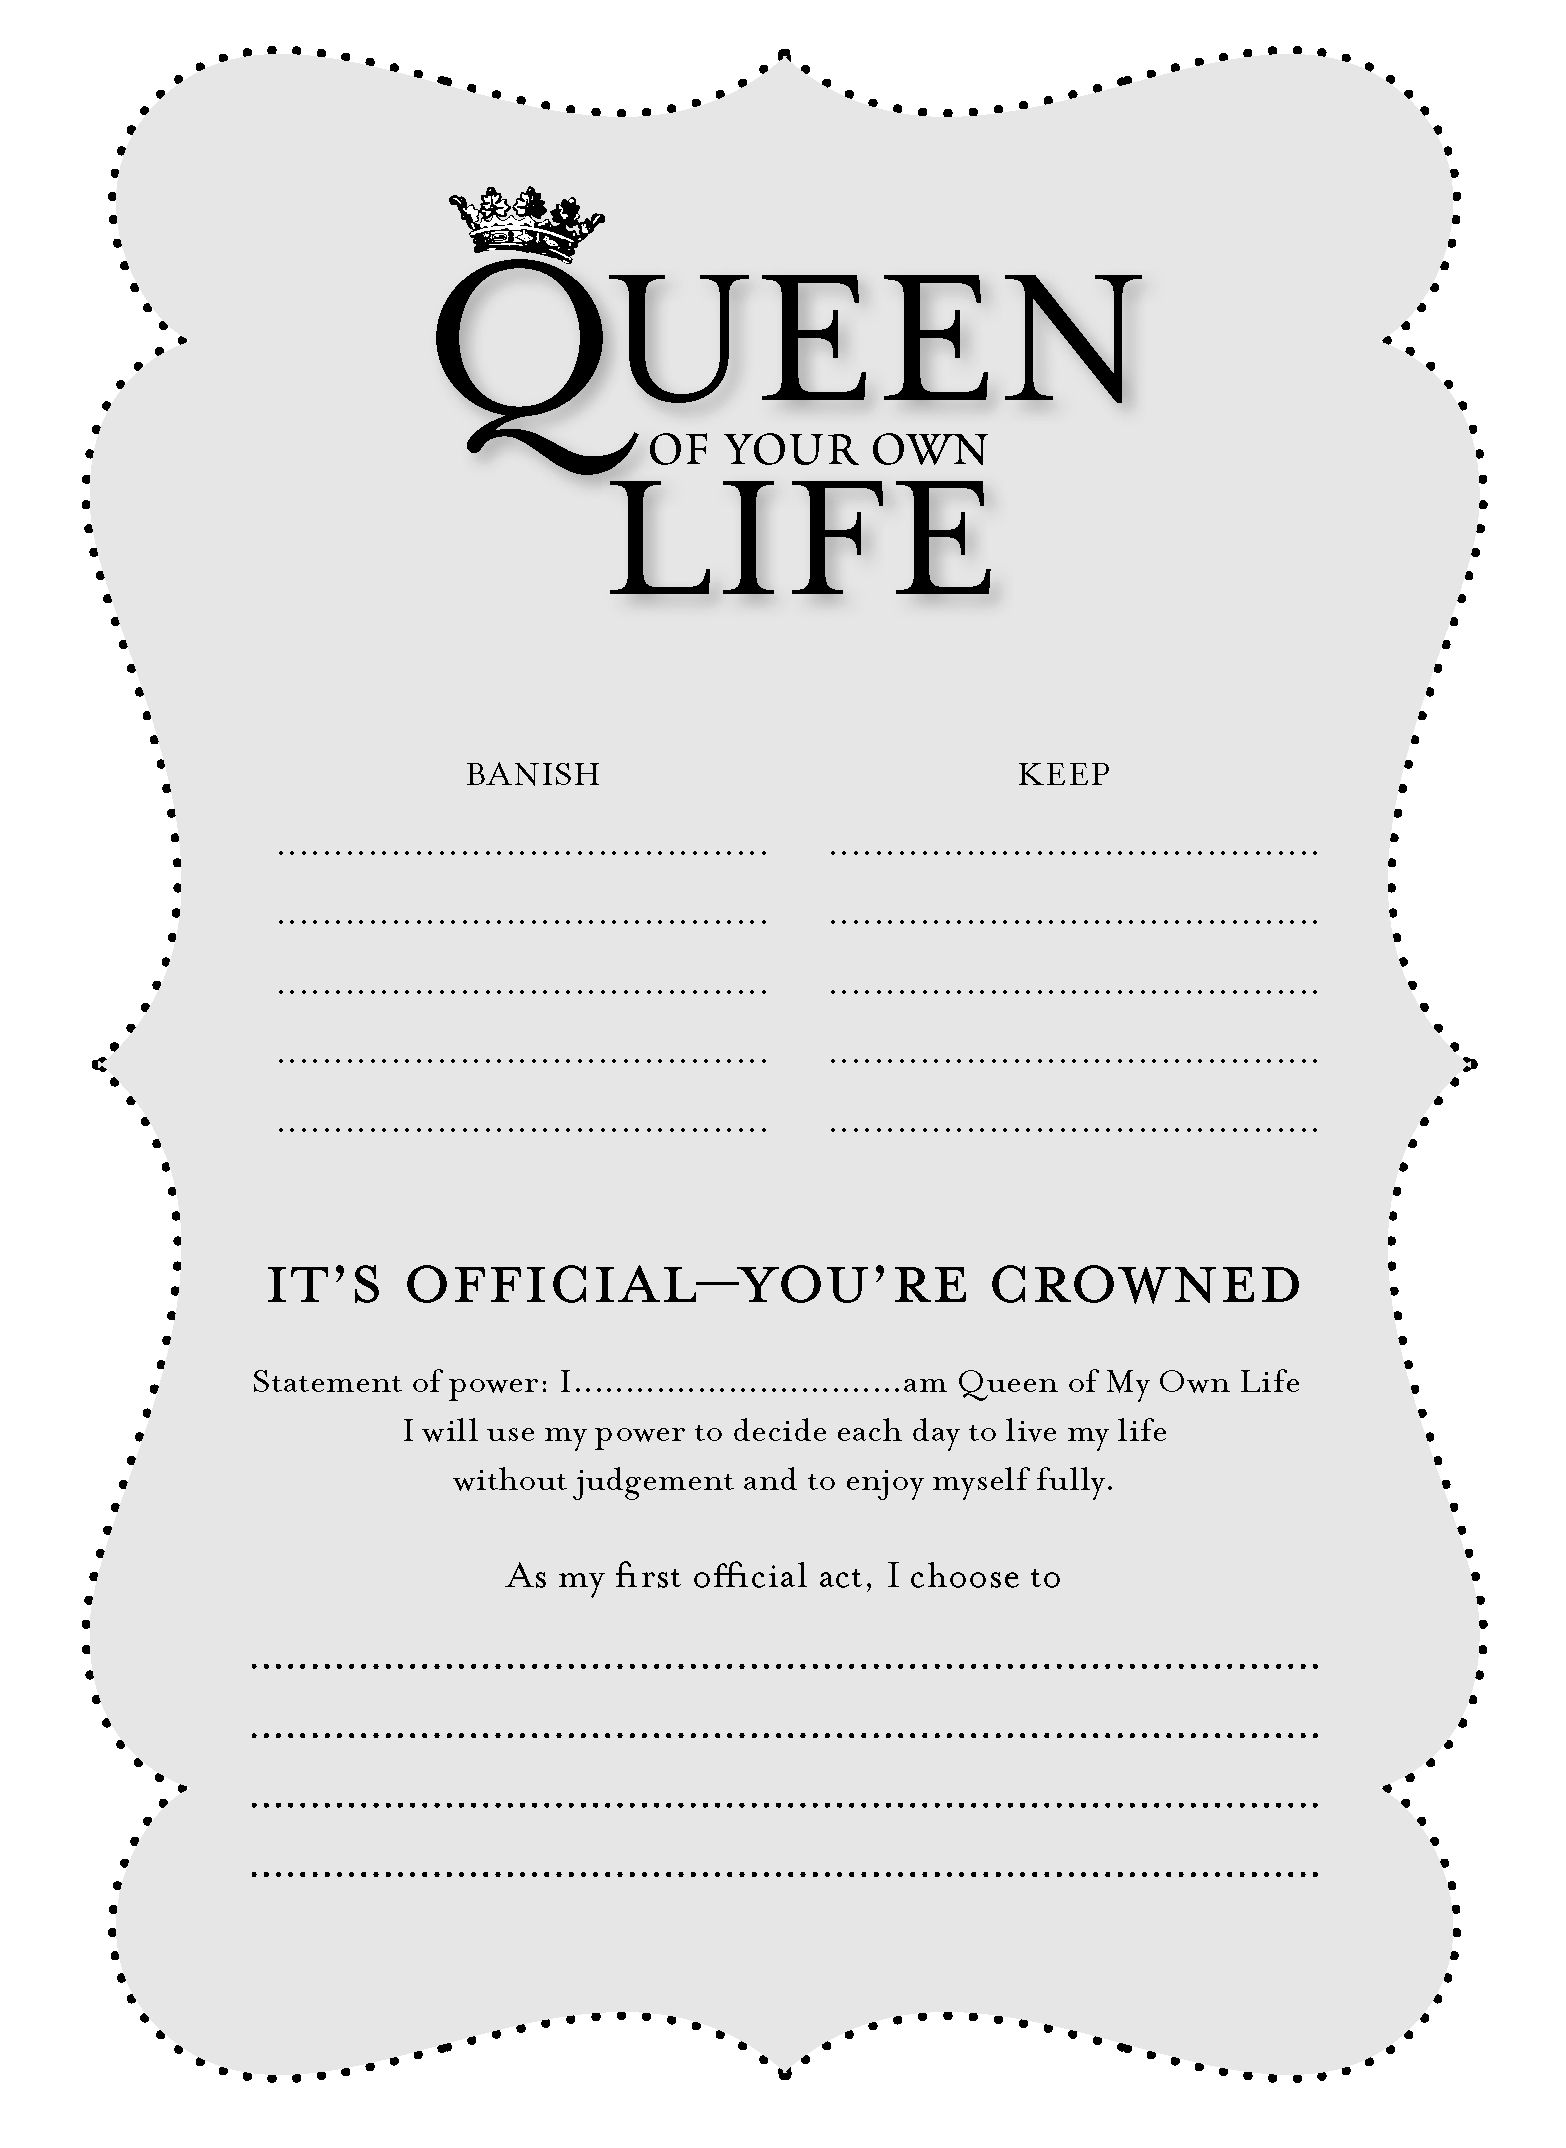 YOU'RE CROWNED certificate